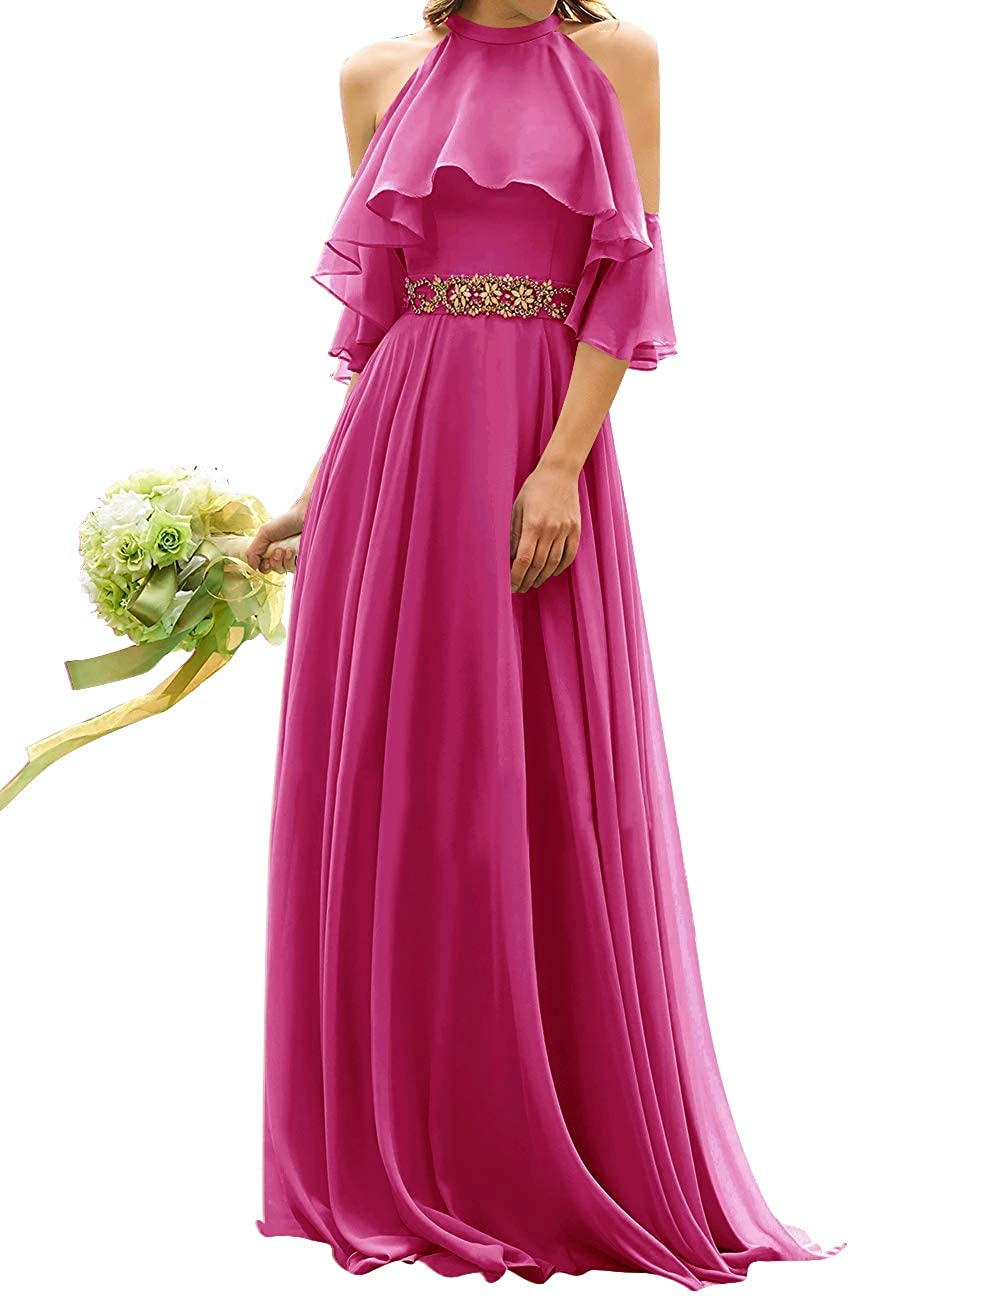 Fuchsia Uther Long Bridesmaid Dress Cold Shoulder Beaded Ruffle Sleeves Wedding Party Dresses